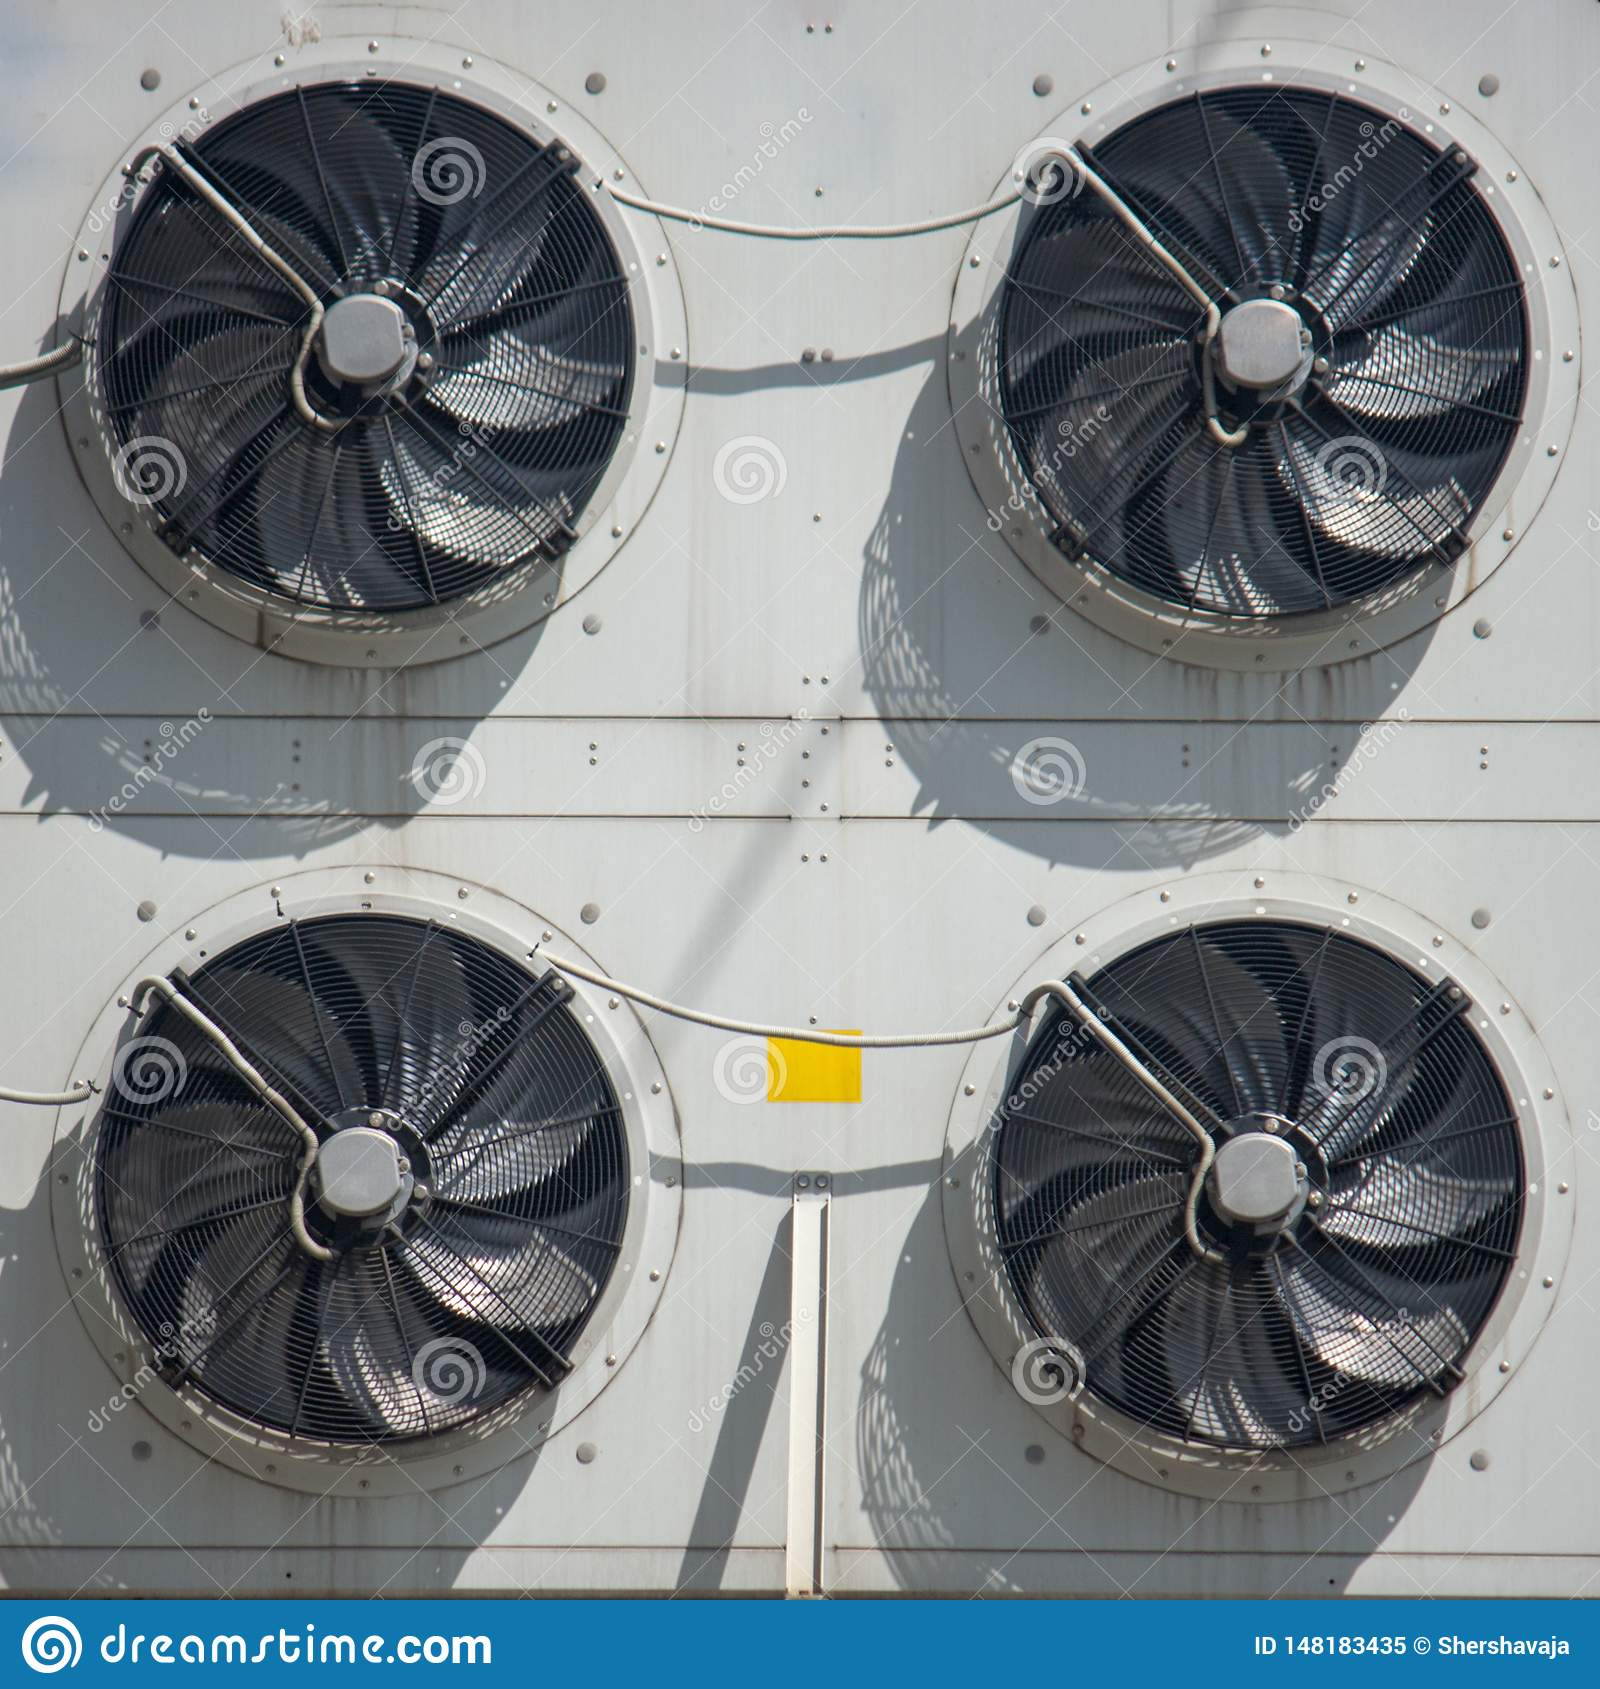 Rotating blades factory fan on the wall of the building